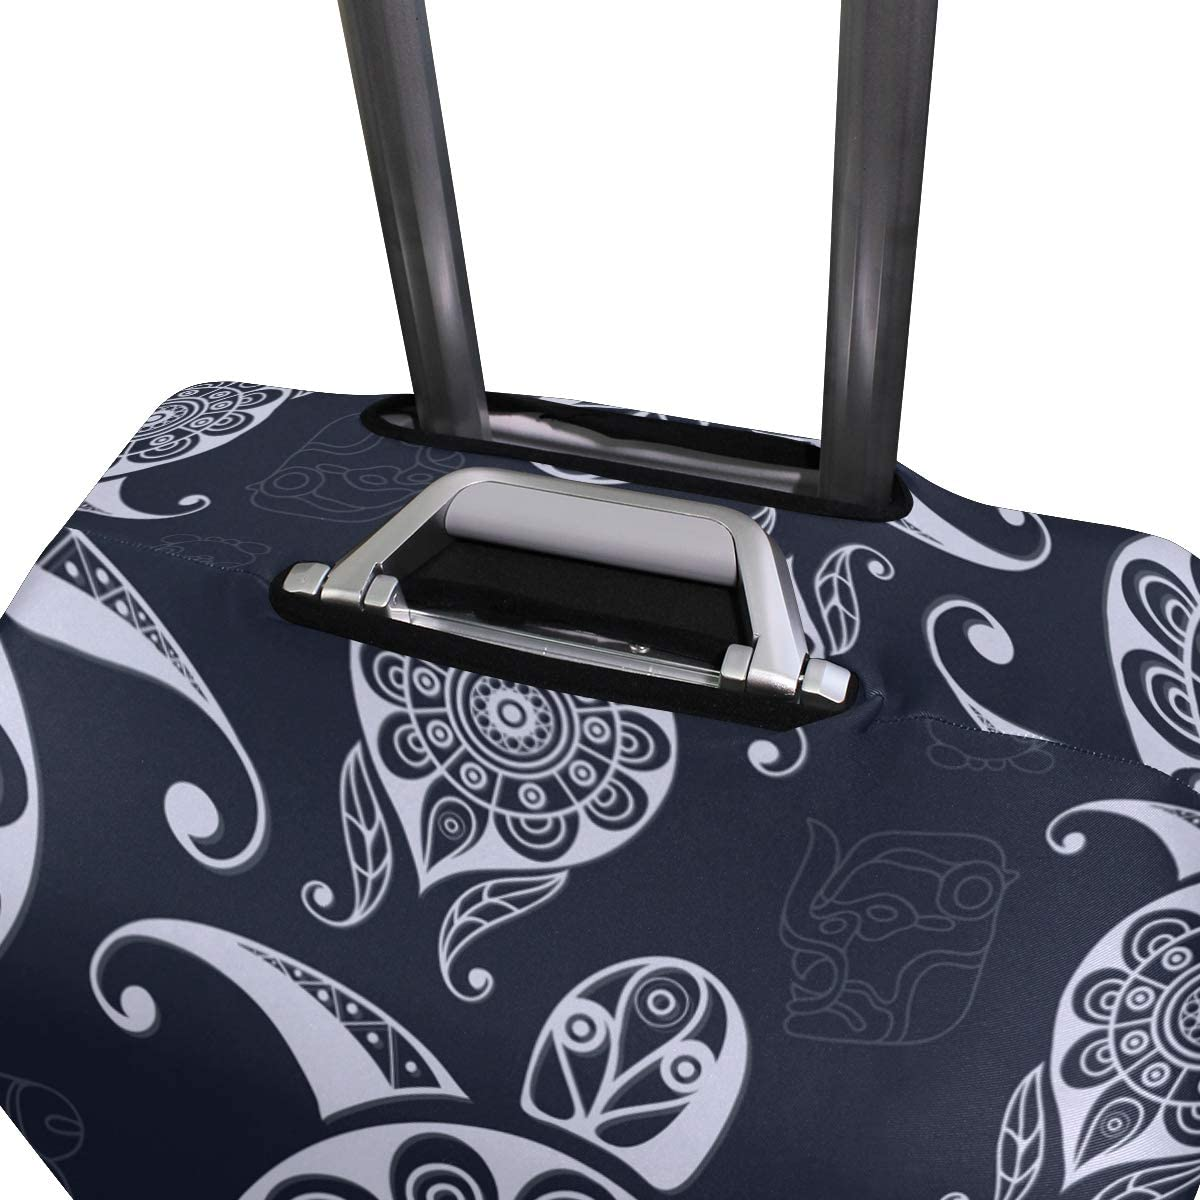 Travel Luggage Cover Grey Pattern Turtle Dark Blue Bckground Suitcase Protector